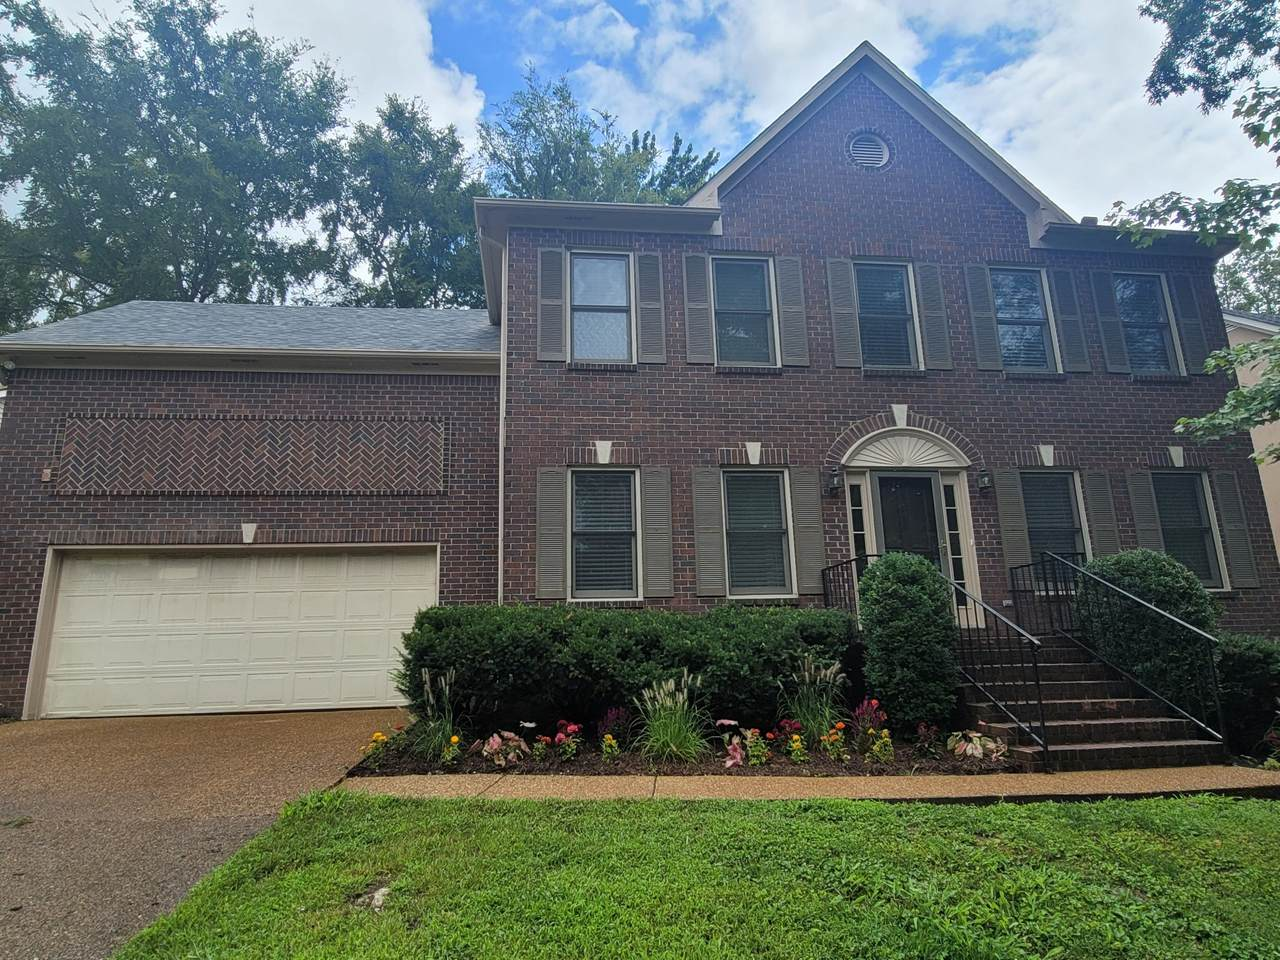 8420 Indian Hills Dr - Photo 1